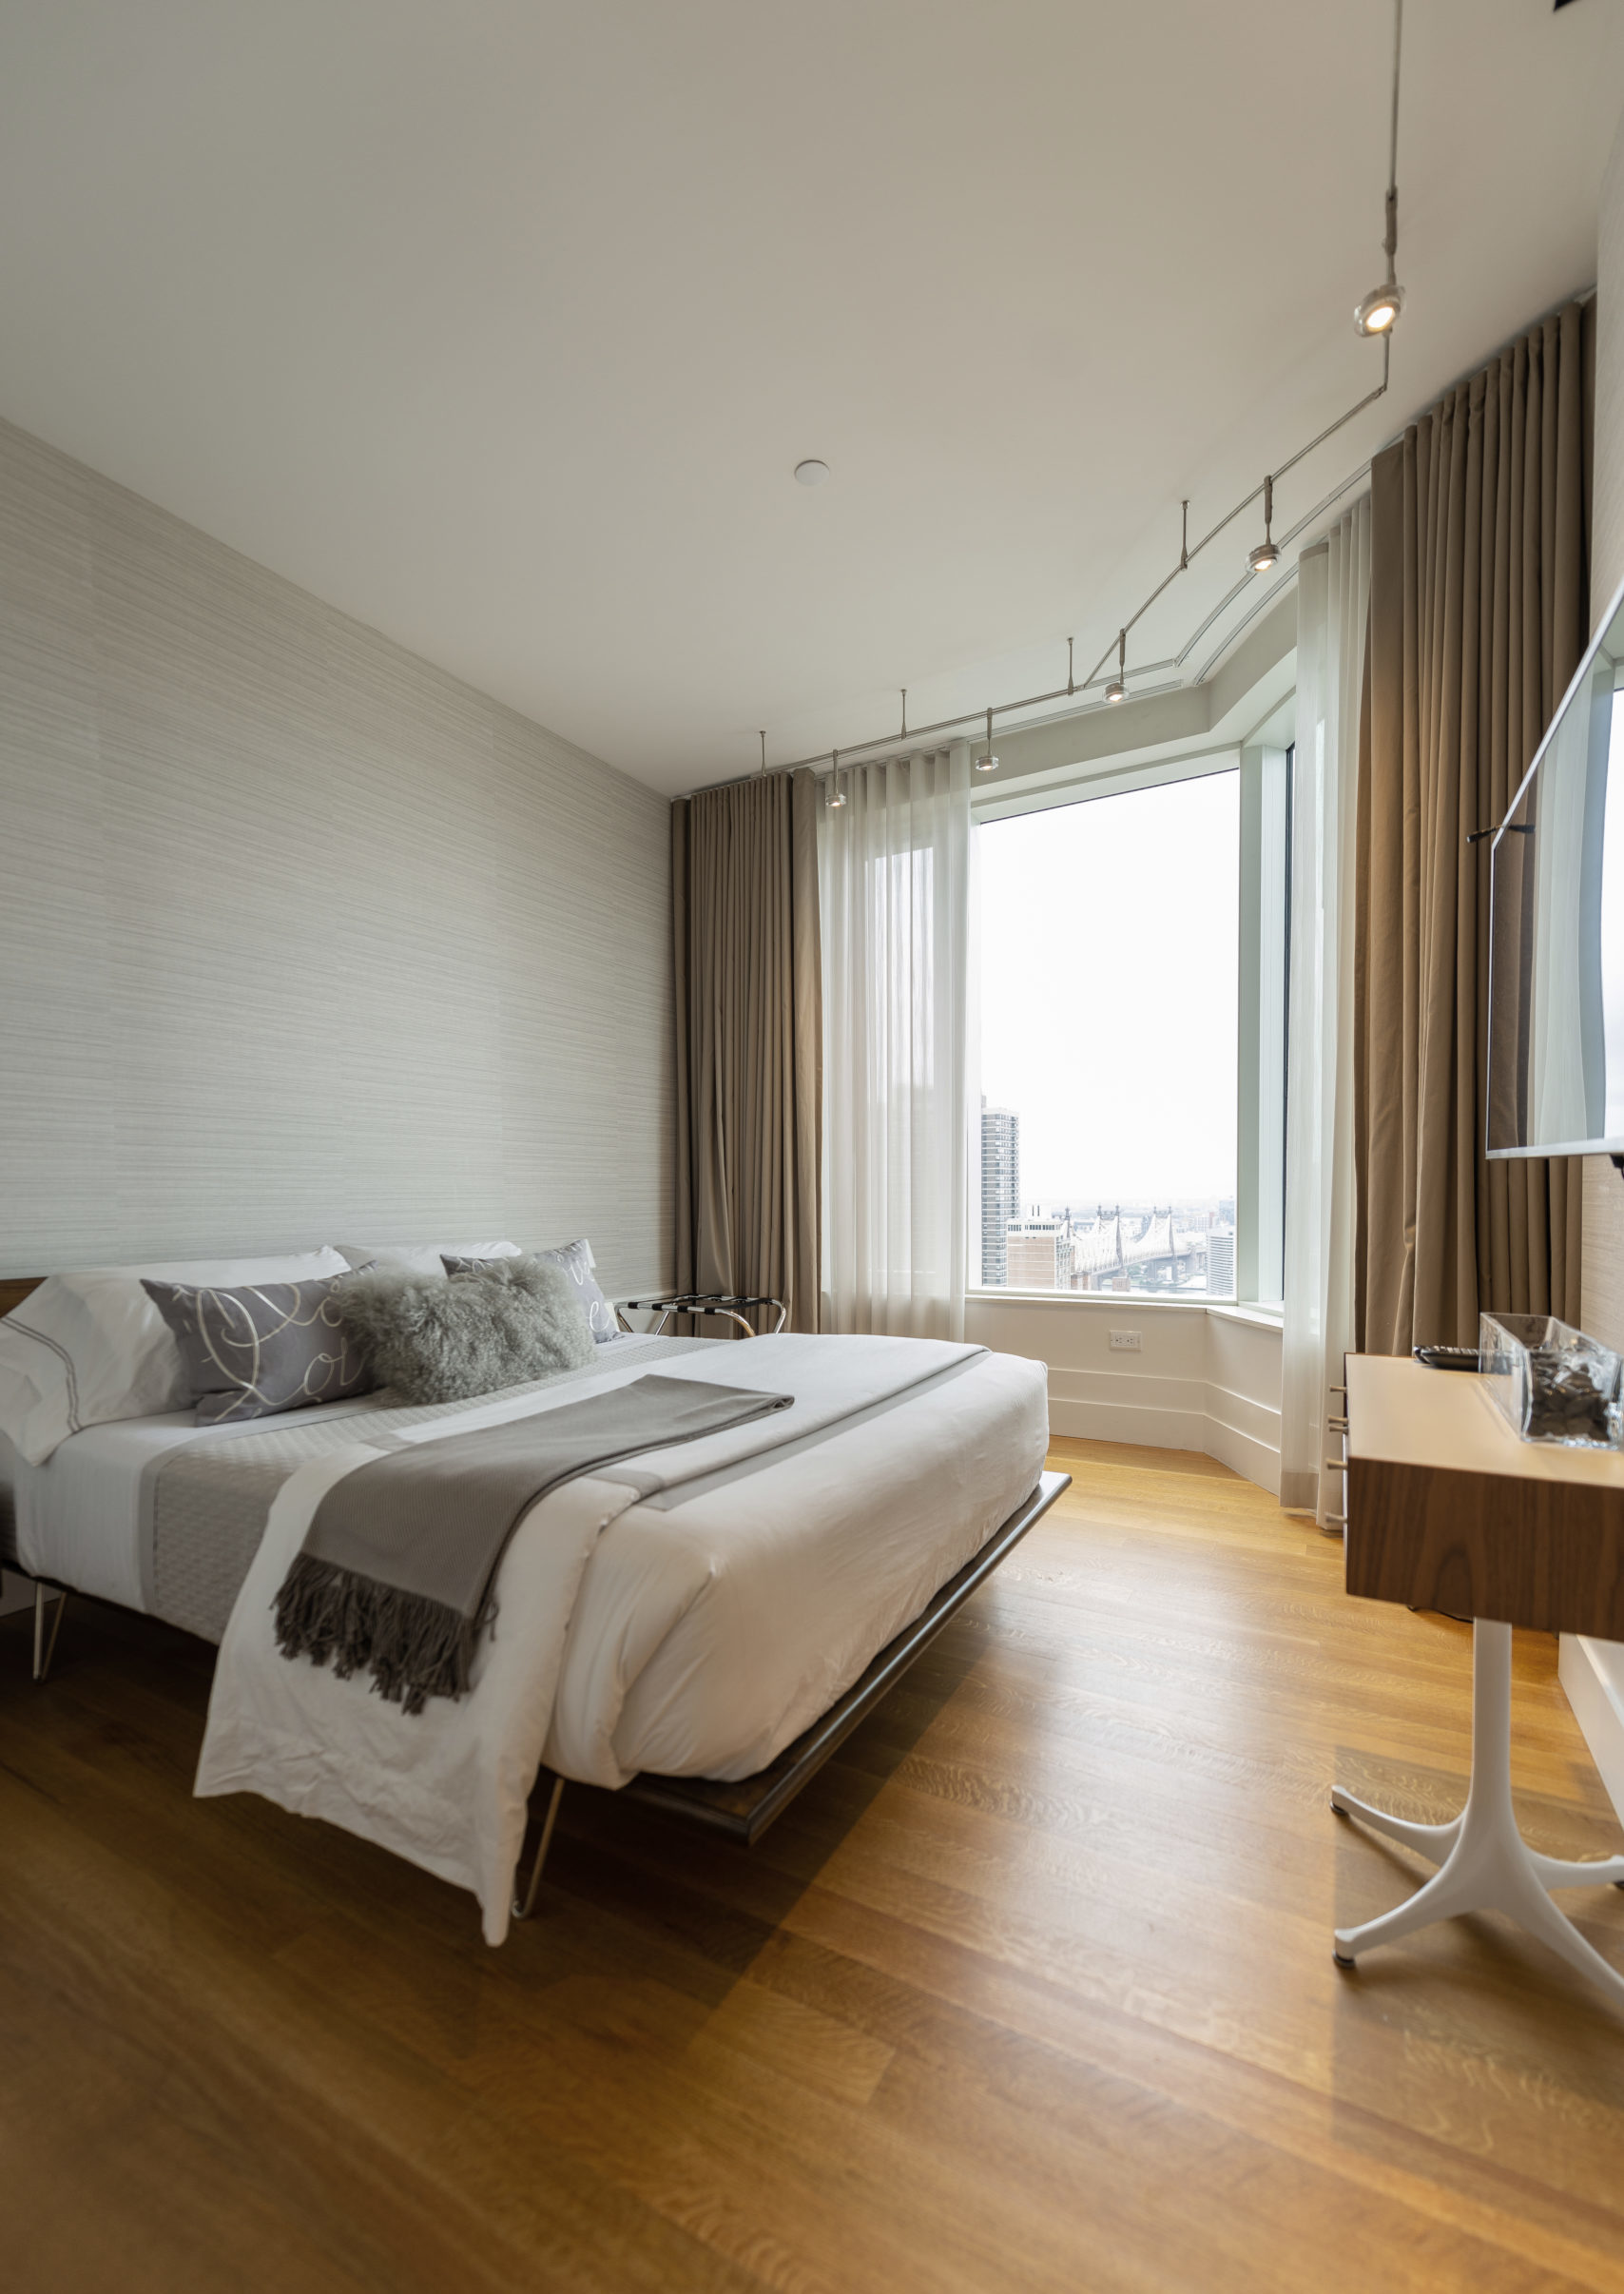 Guest room design by EXD Architecture on Billionaire's row, New York City